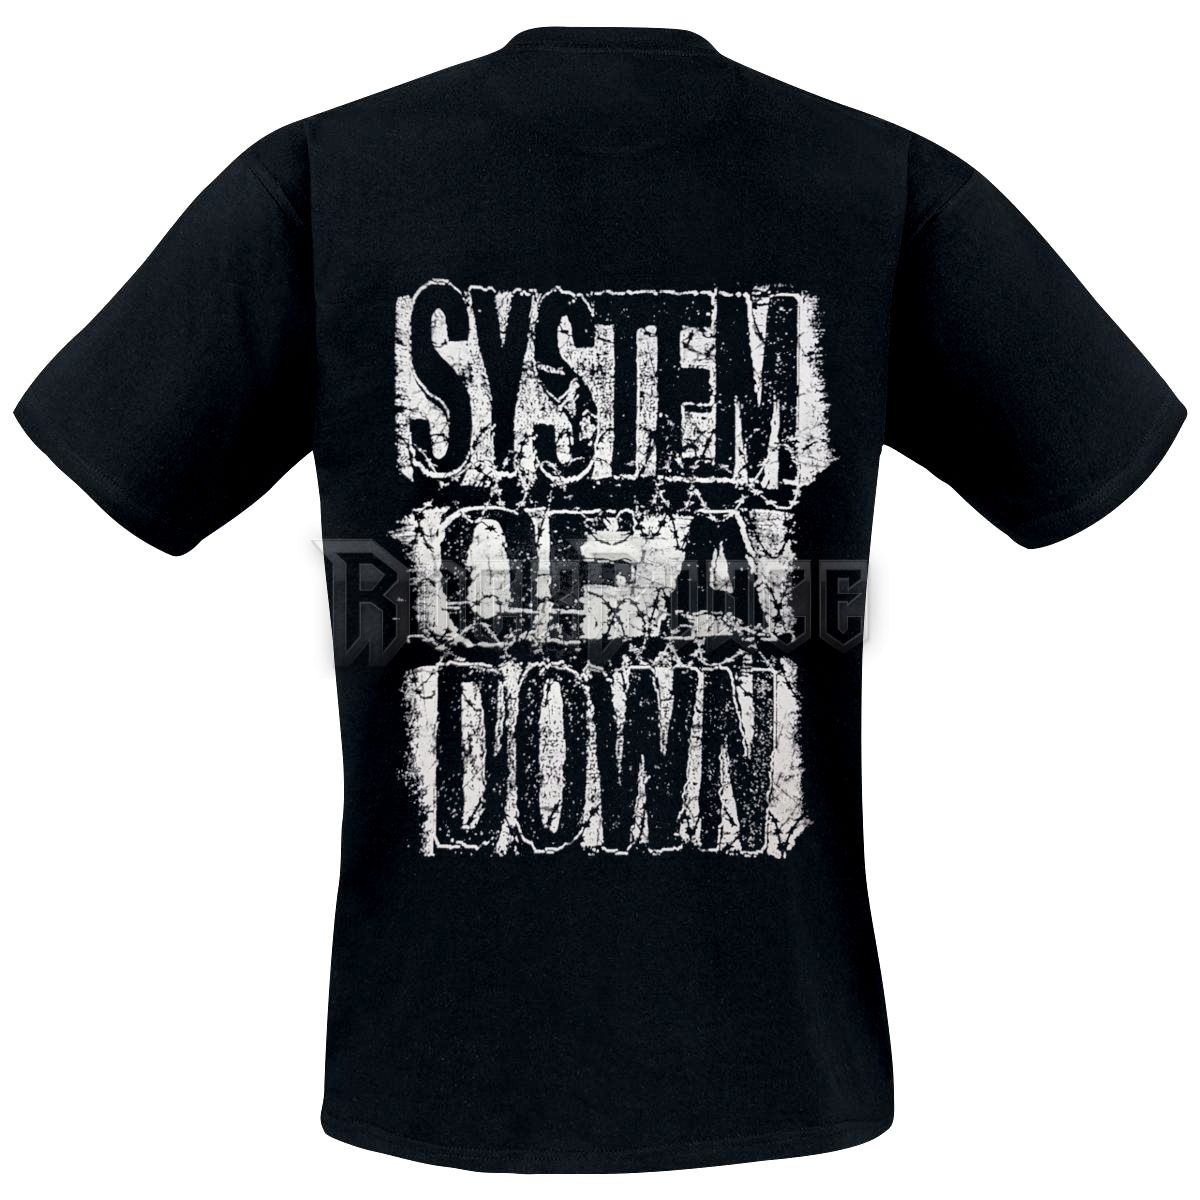 SYSTEM OF A DOWN - DISTRESSED LOGO - UNISEX PÓLÓ